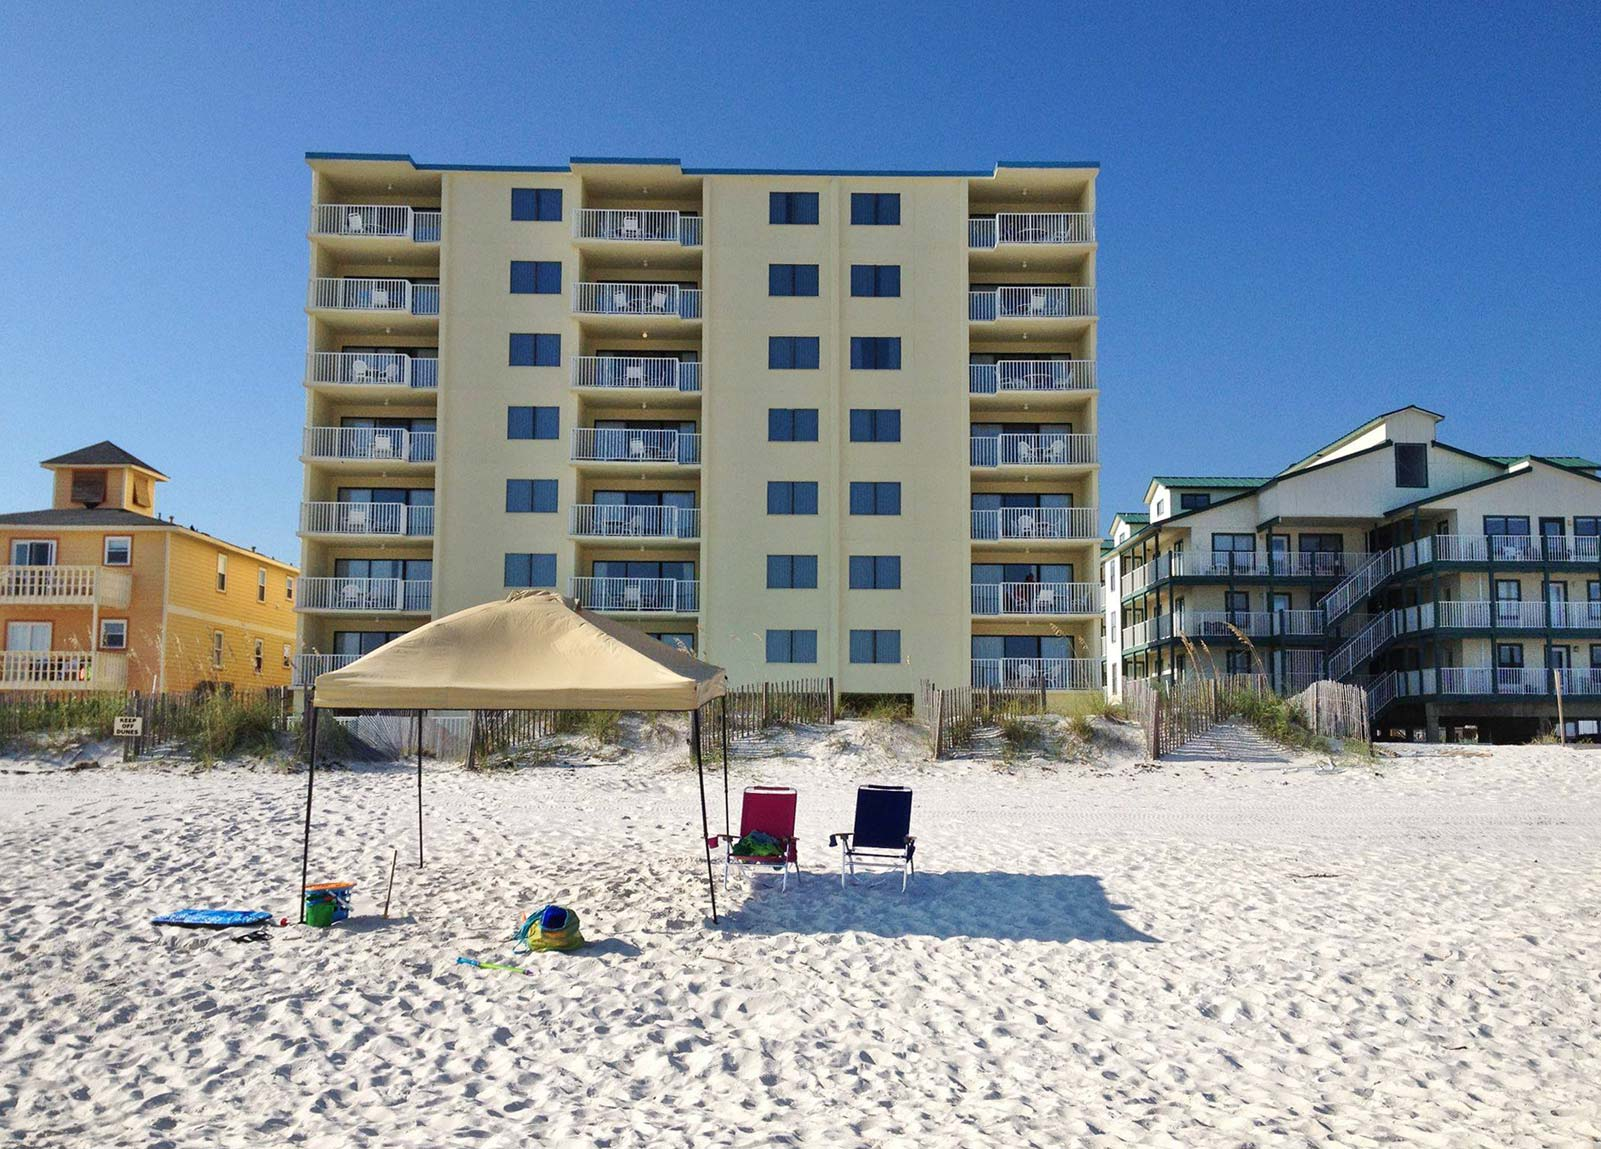 Gulf shores alabama hotels shoreline towers resort